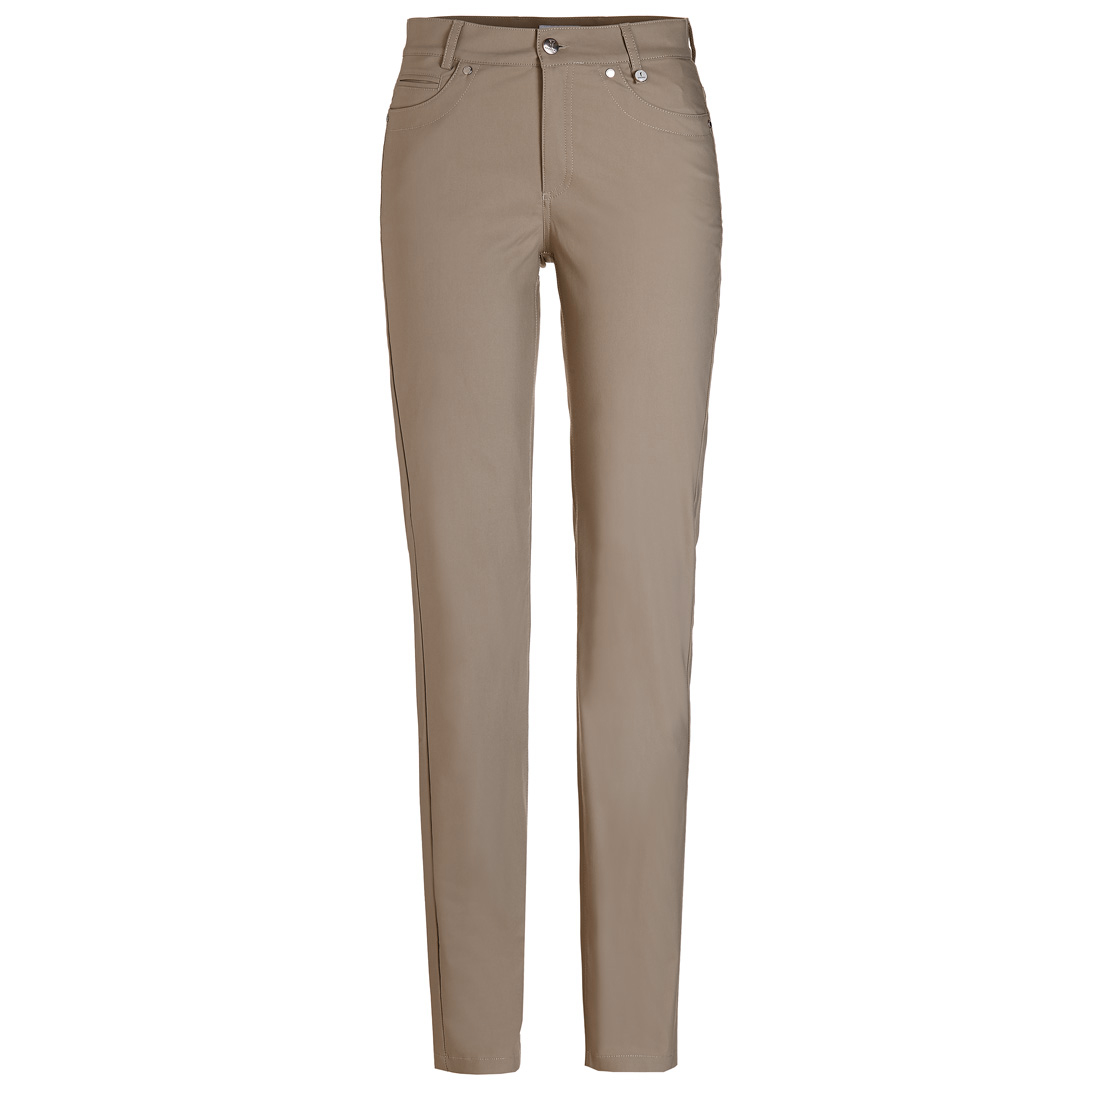 Ladies' golf trousers in fine cotton blend in slim fit